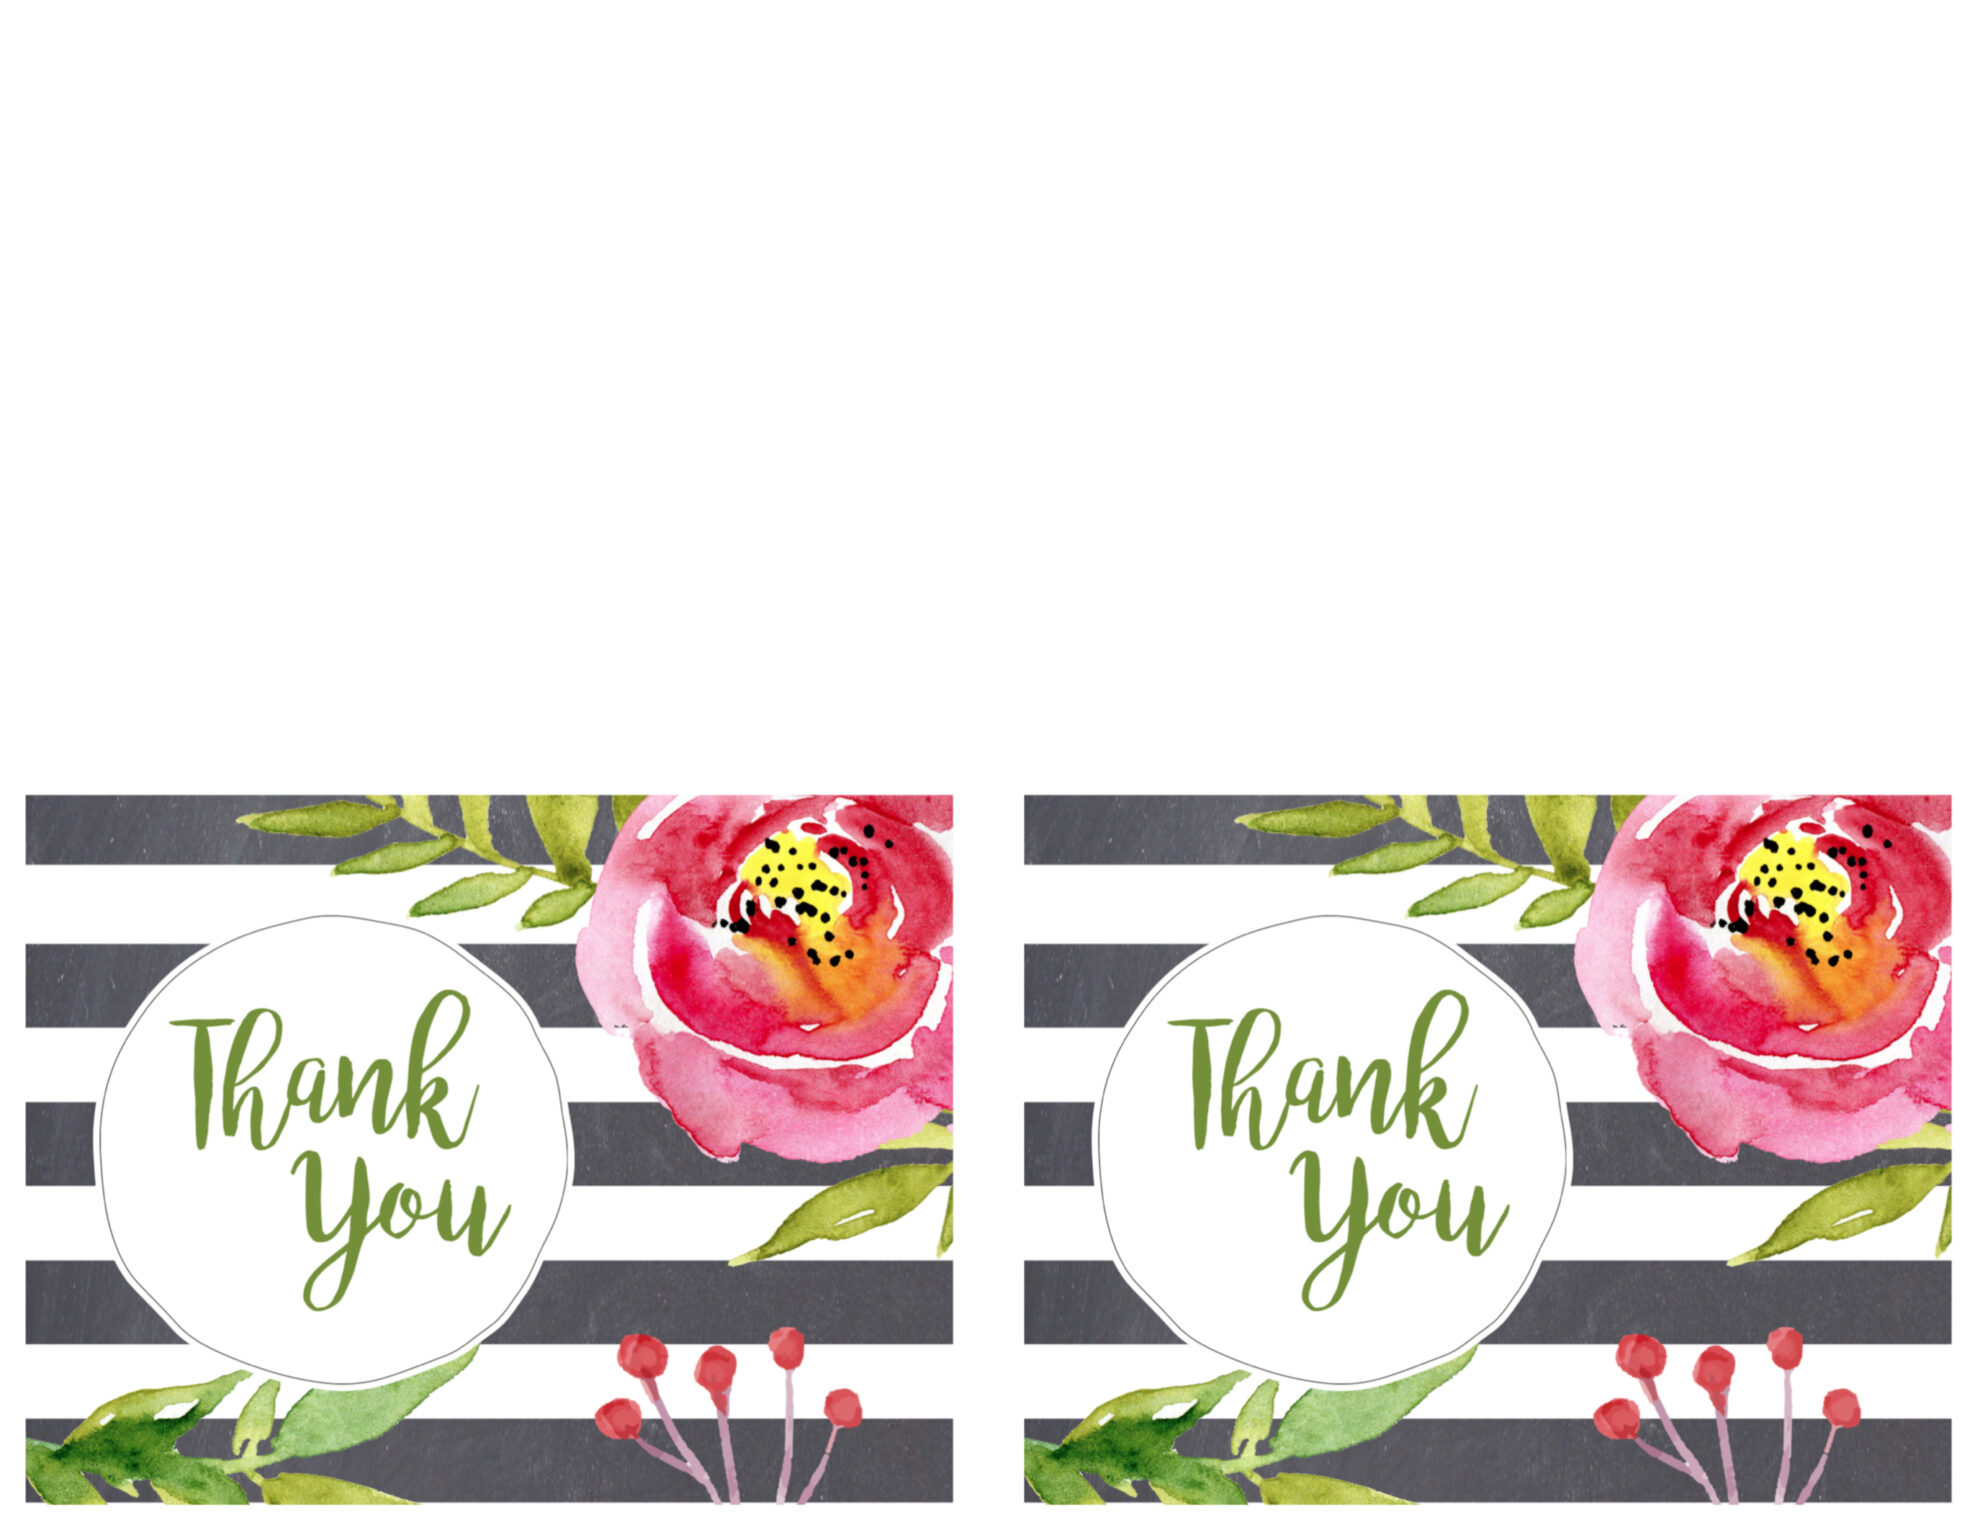 Free printable greeting cards thank you thinking of you birthday thank you card free printable izmirmasajfo